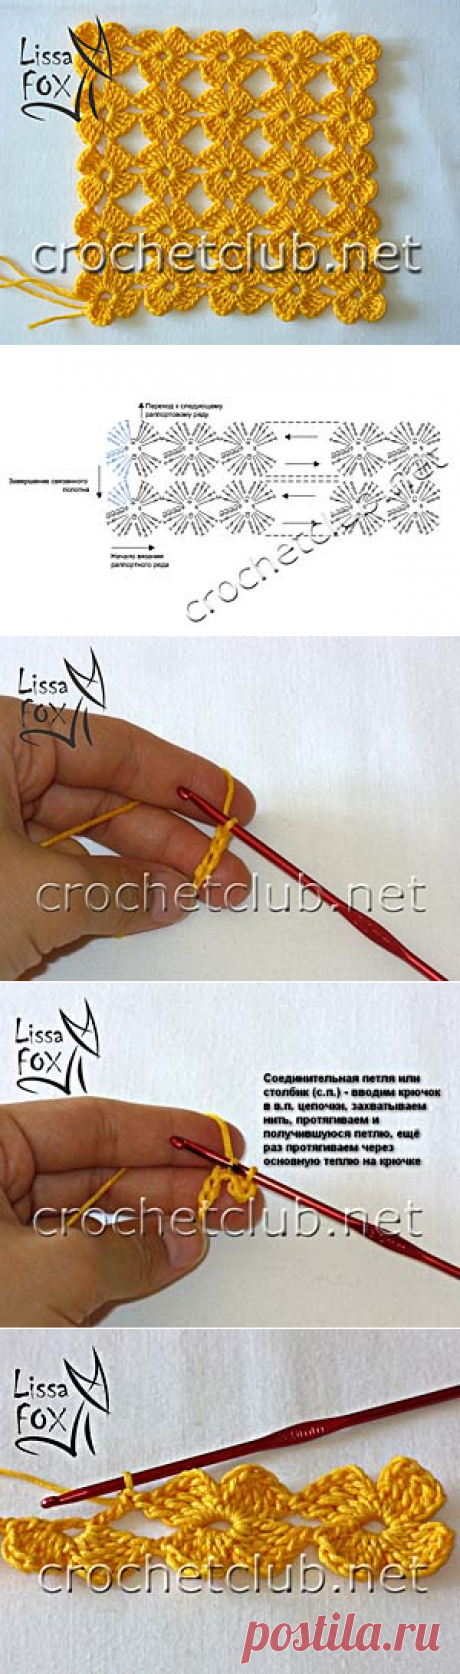 Master class in continuous knitting - Knitting by the Hook. Nastik's blog